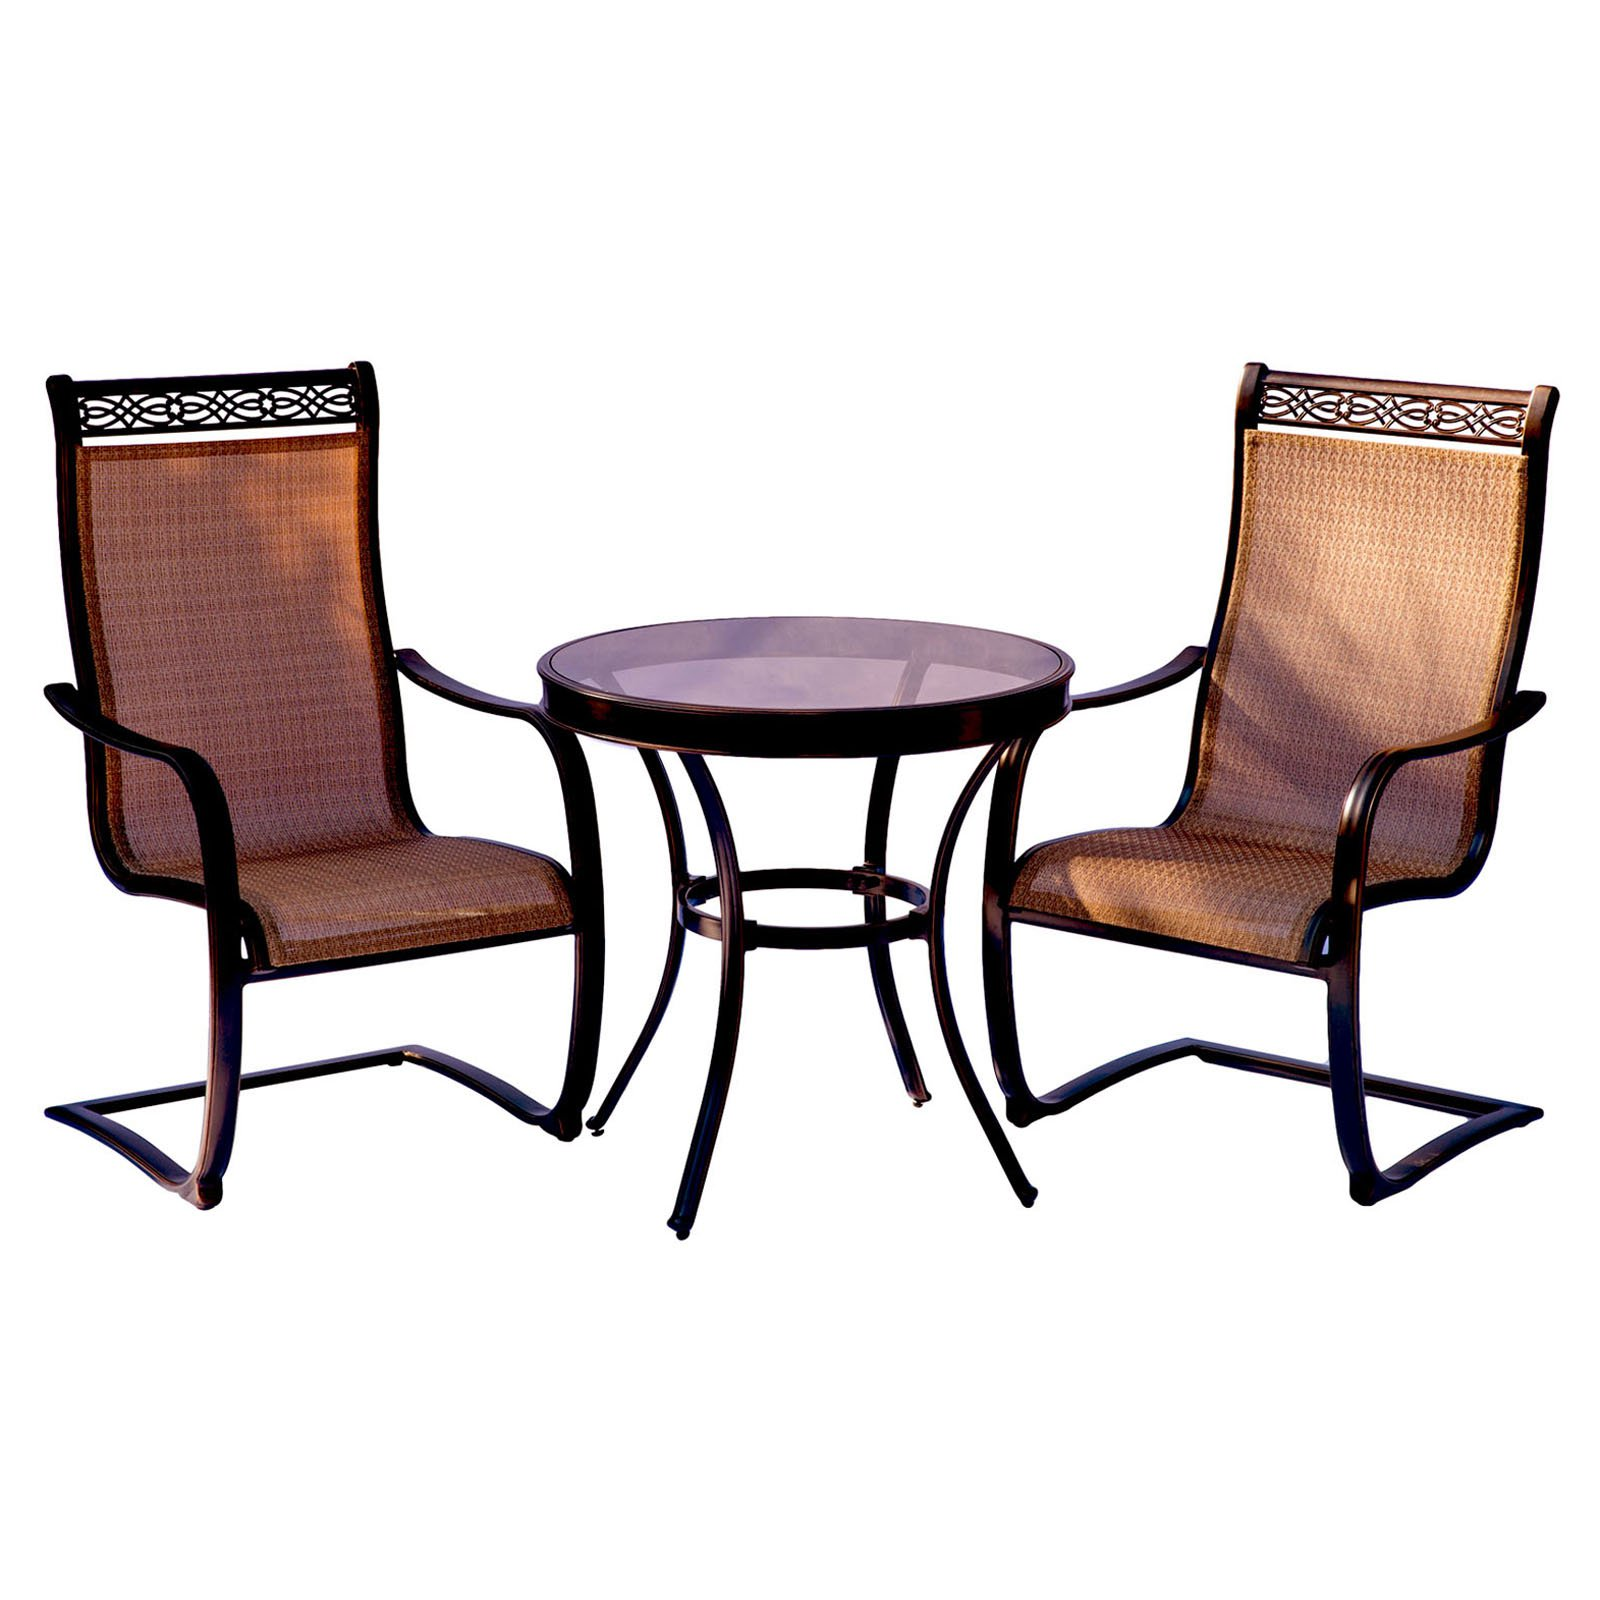 Hanover Outdoor Monaco 3-Piece Glass-Top Bistro Set with Sling C-Spring Chairs, Cedar